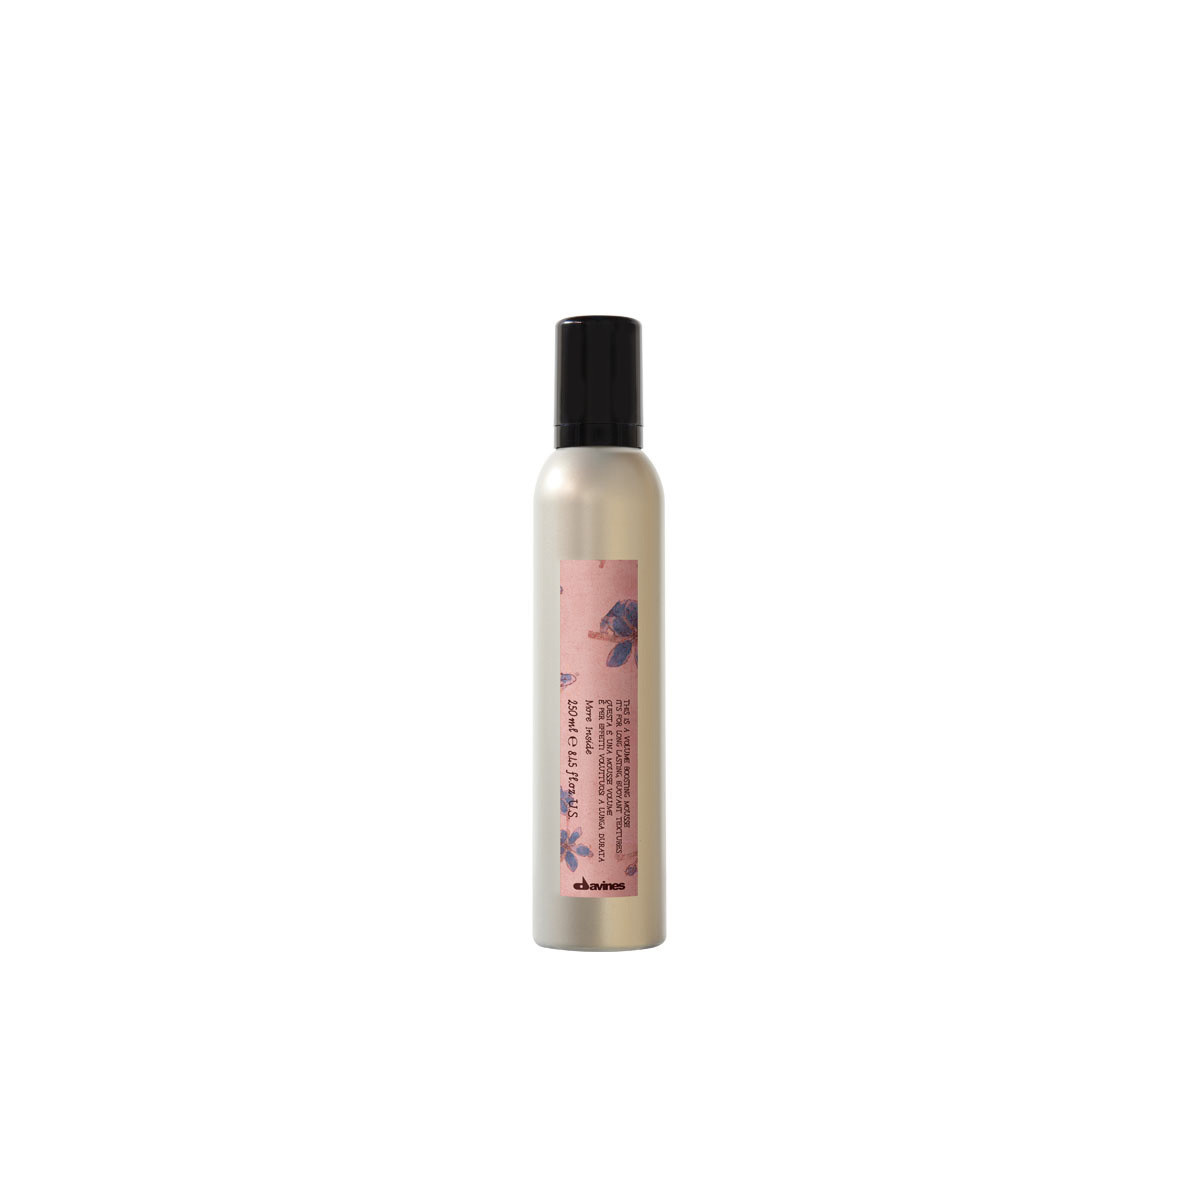 Davines This is a Volume Boosting Mousse 239 g   Mousse para Volumen